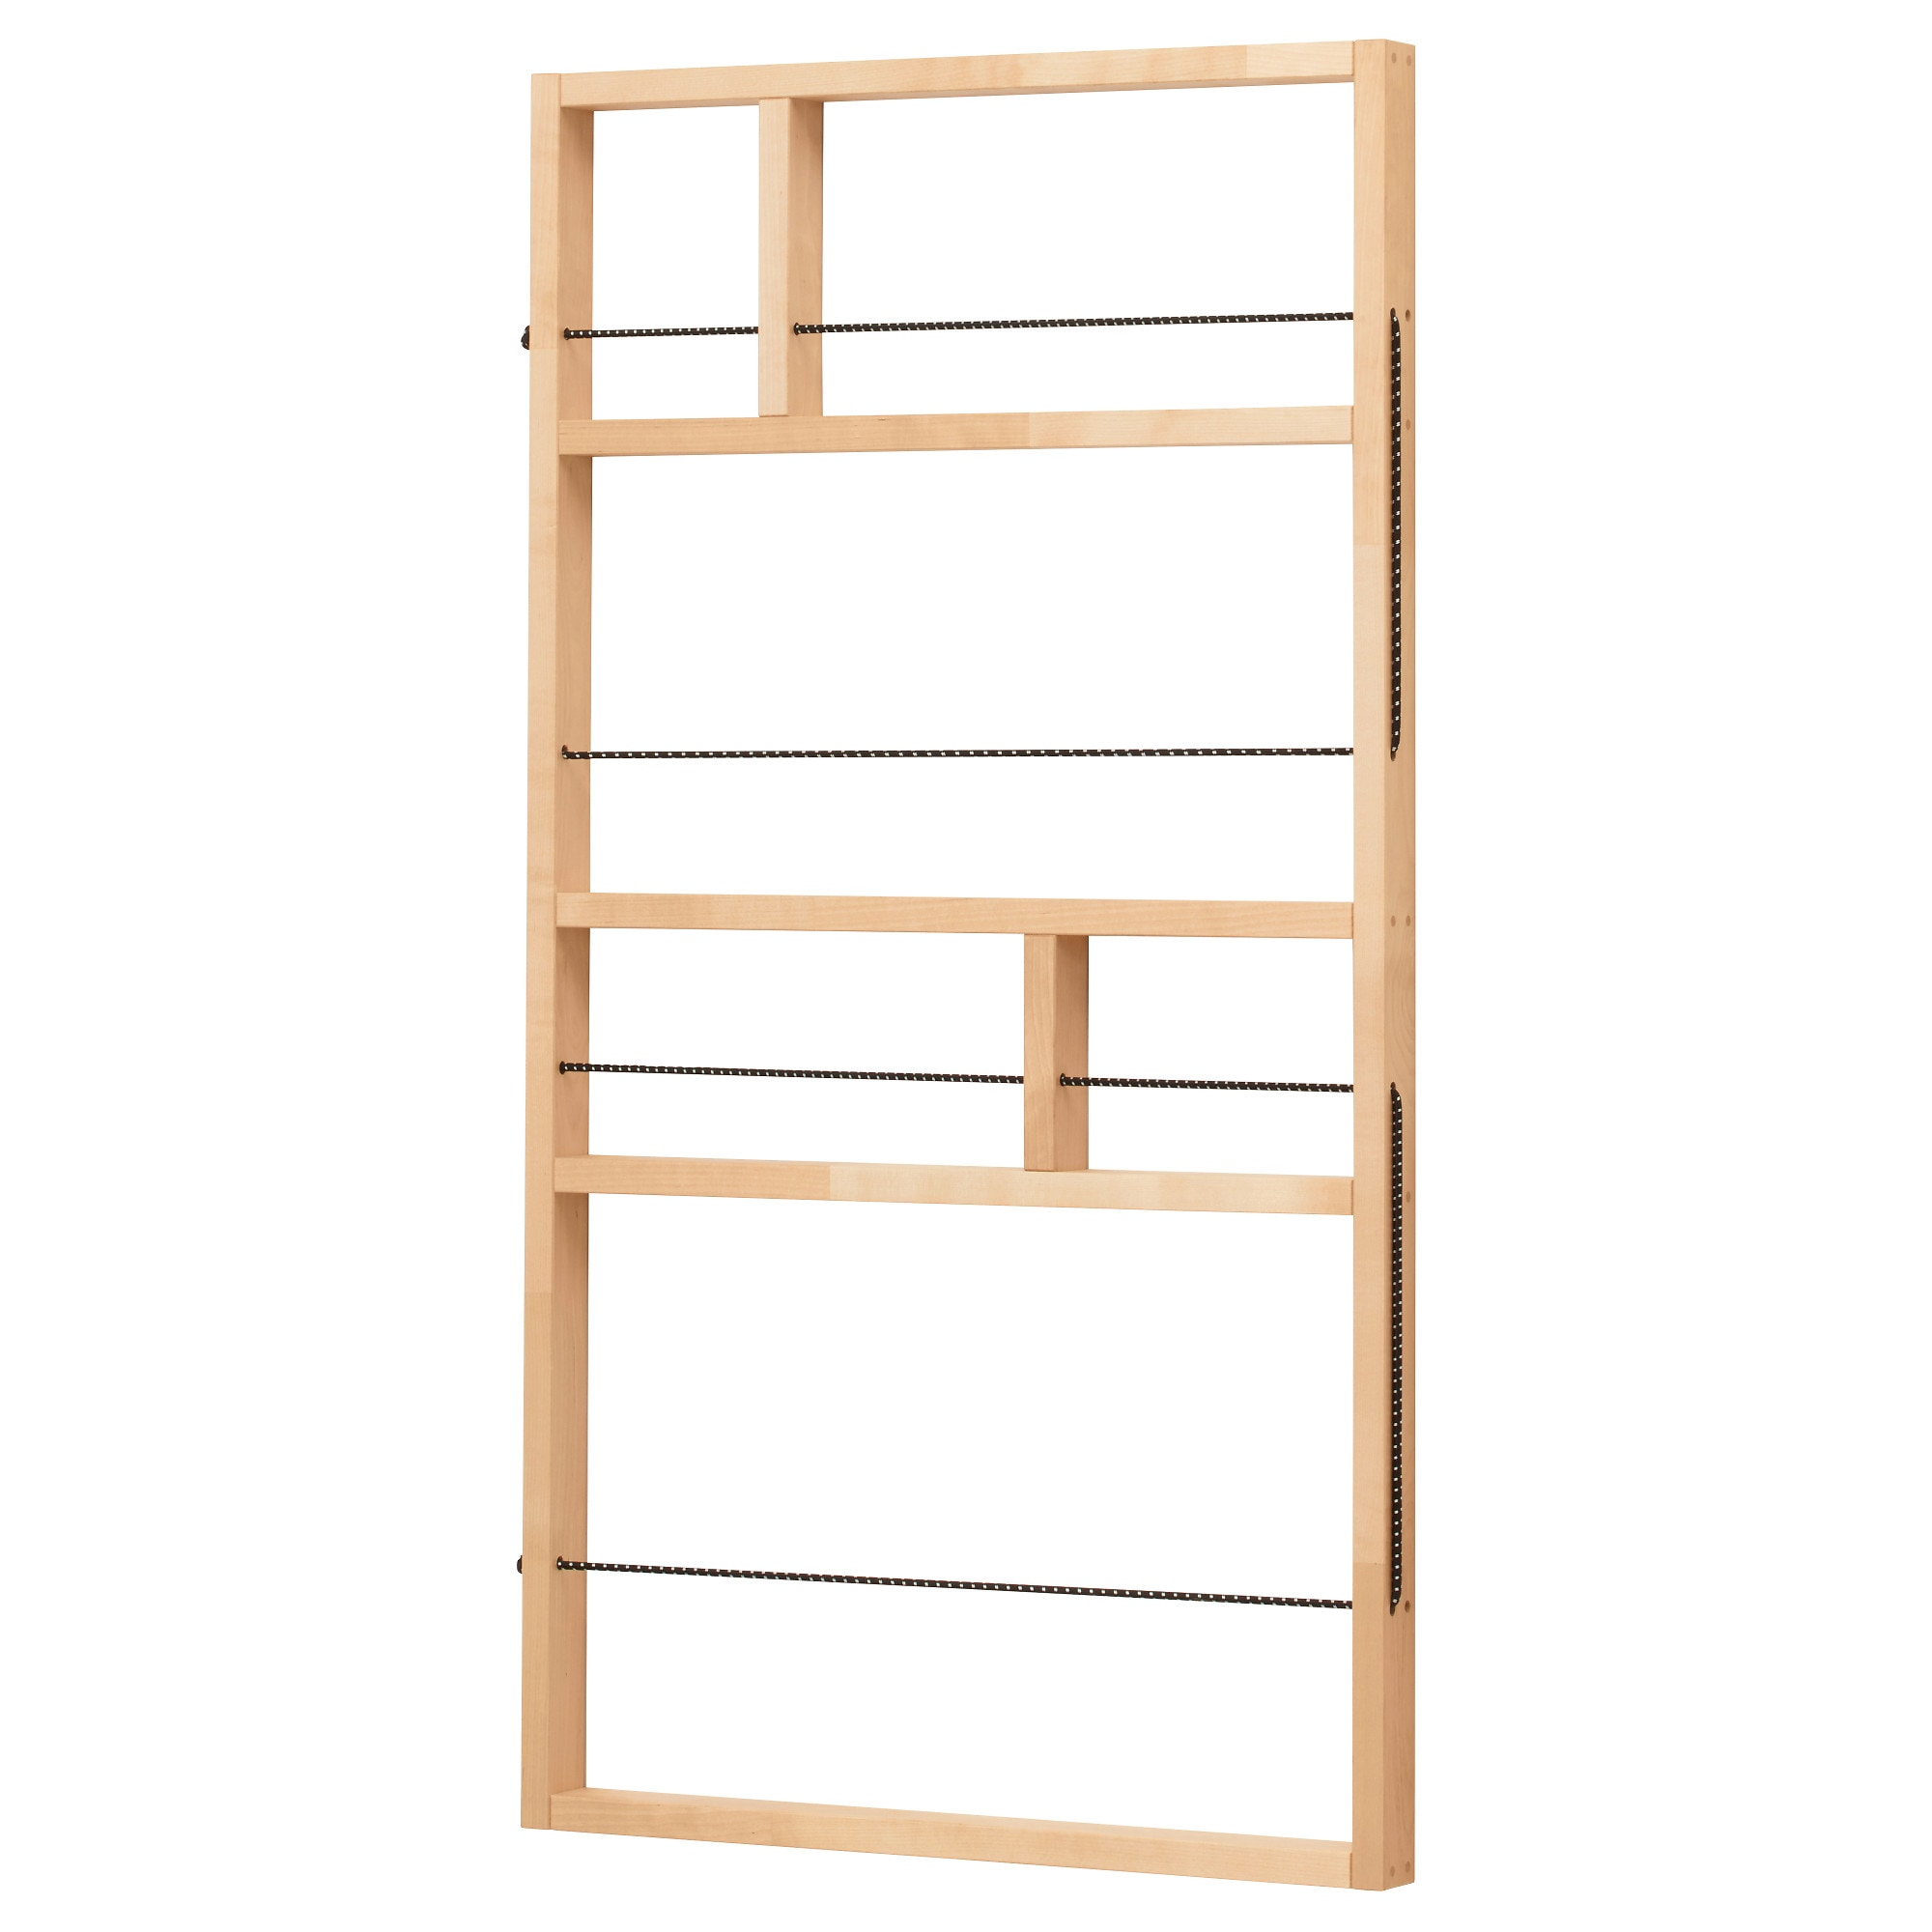 Wall Shelving Systems - IKEA